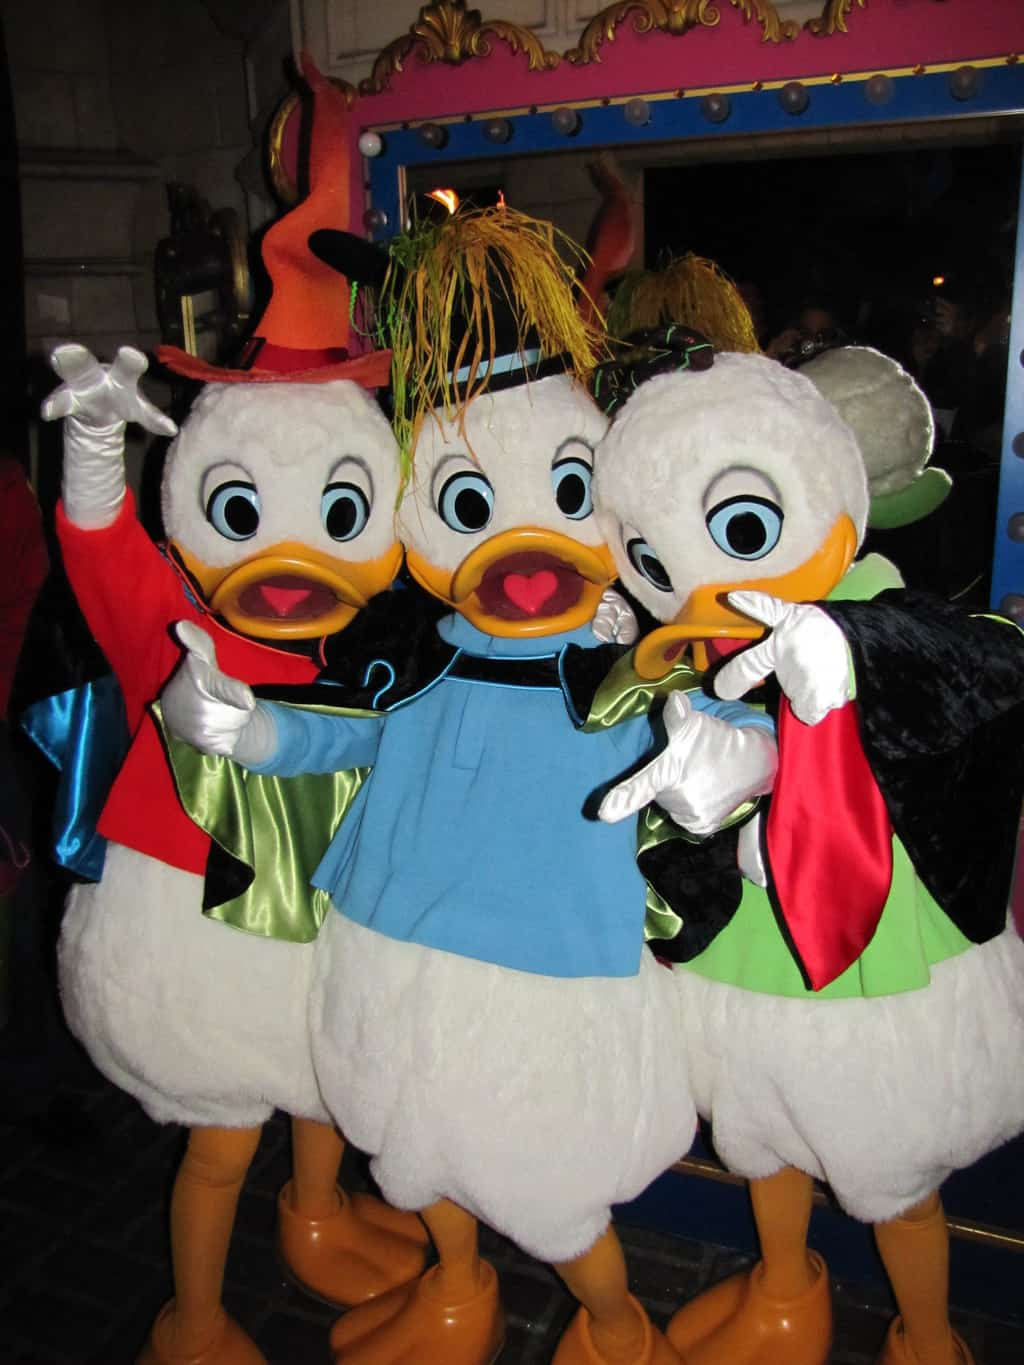 During the Halloween Party on October 31st 2011 Huey, Dewey and Louie did meet'n'greets with guests. This was the first time the three came out to greet guests at Disneyland Paris.